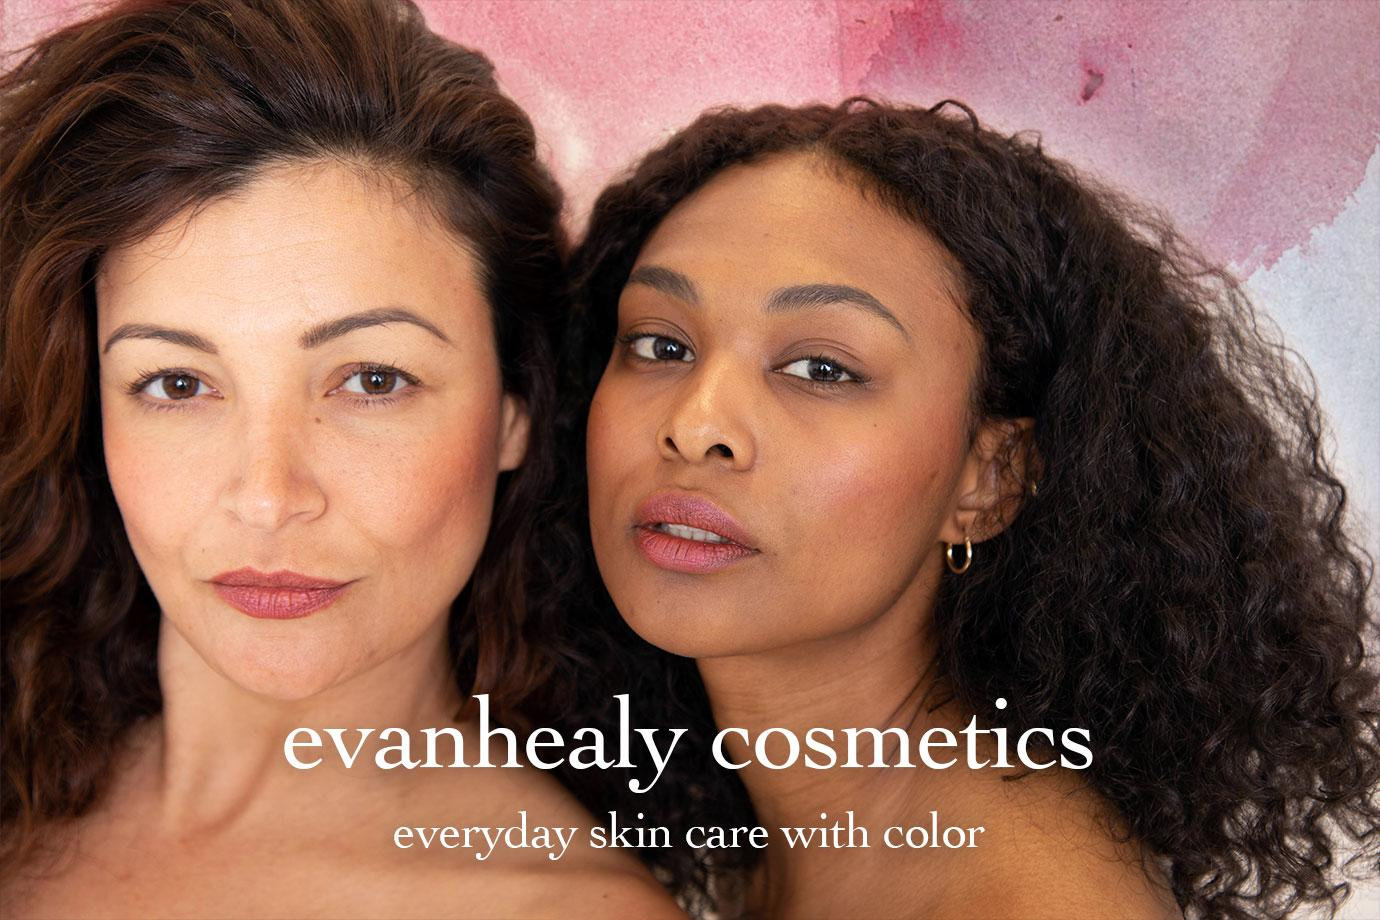 evanhealy Cosmetics Everyday skin care with color